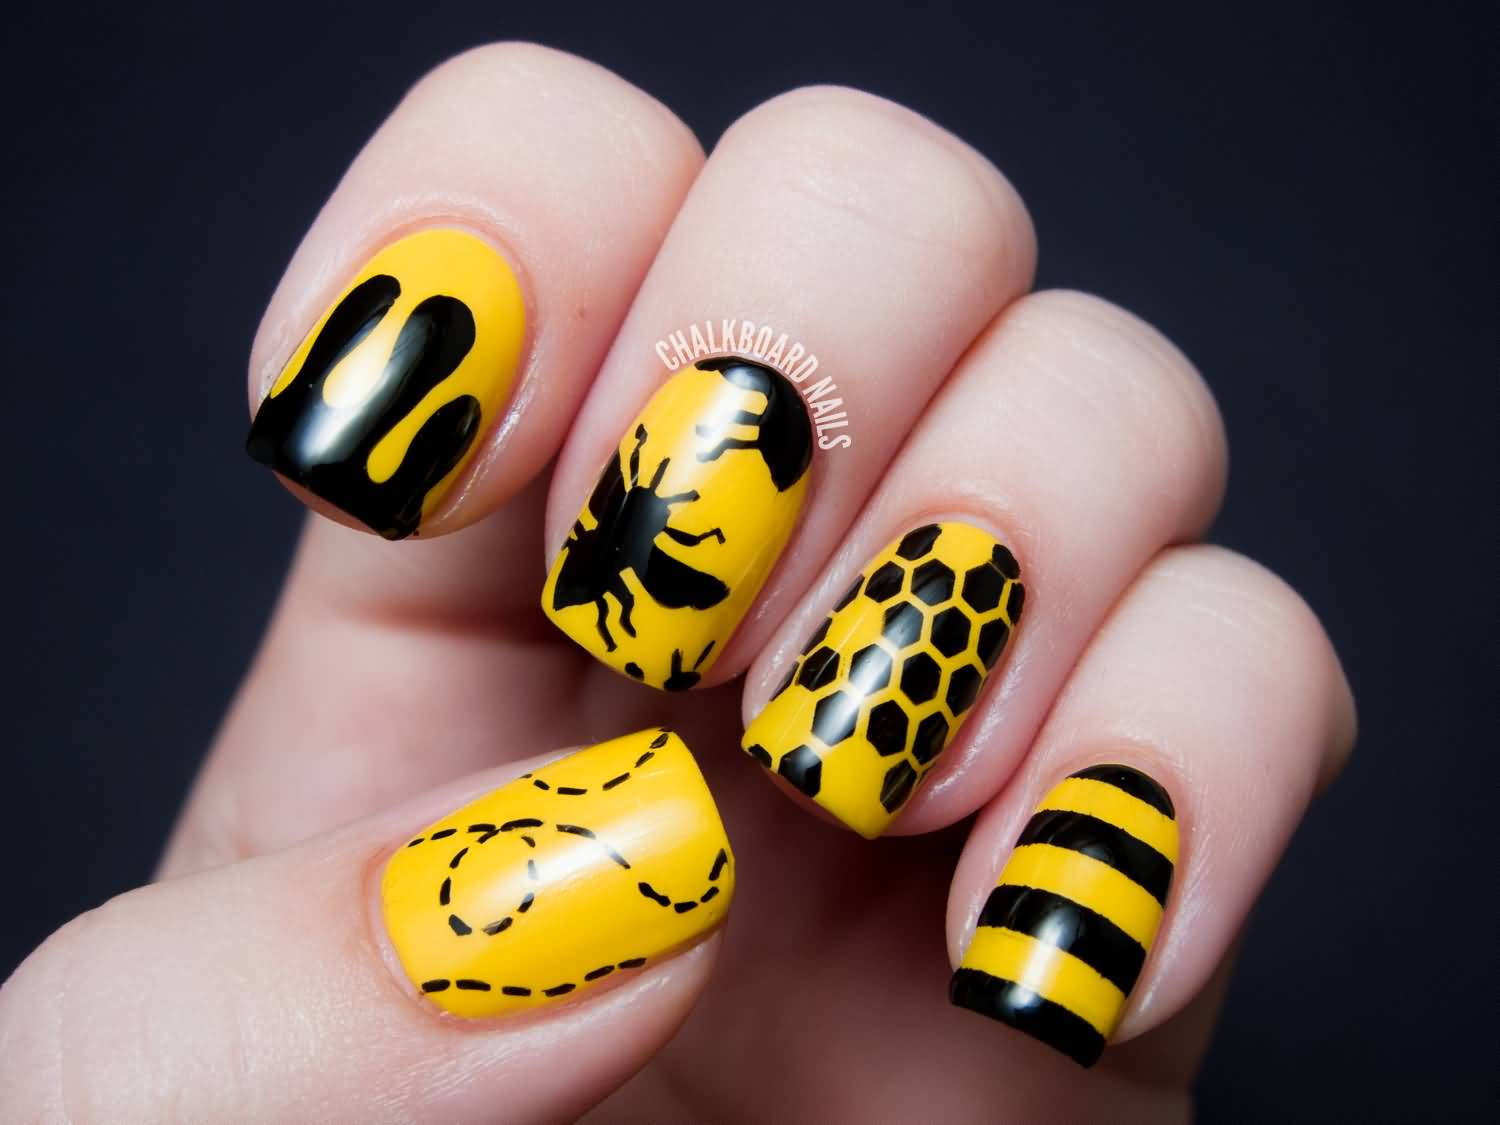 Yellow Nails With Silhouette Bee Dots And Stripes Design Nail Art